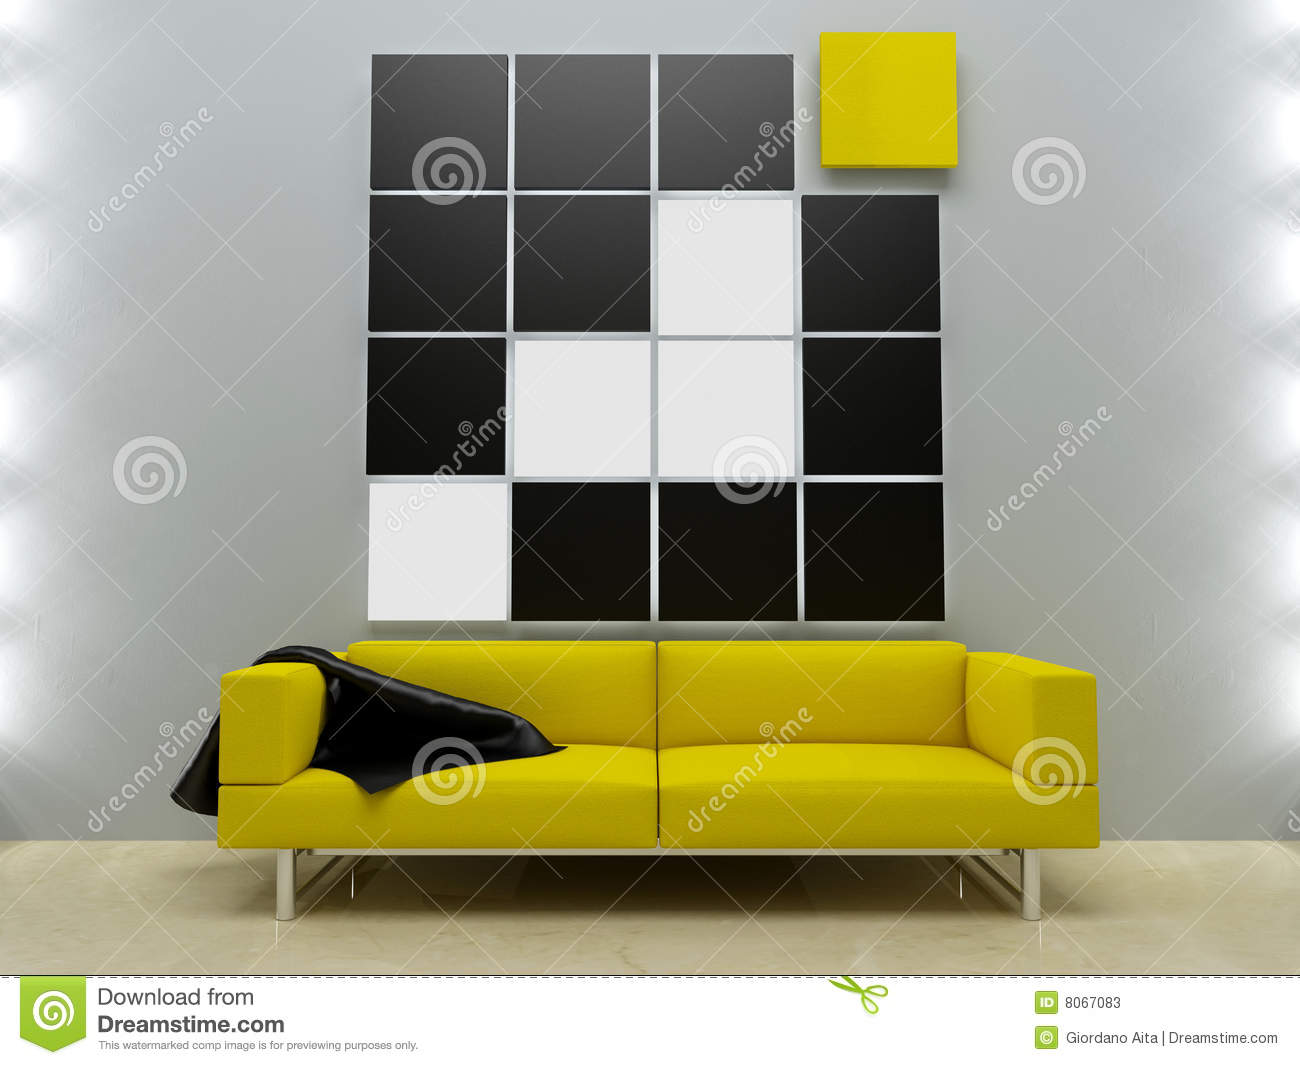 Interiors Design Yellow Couch In Modern Style Stock